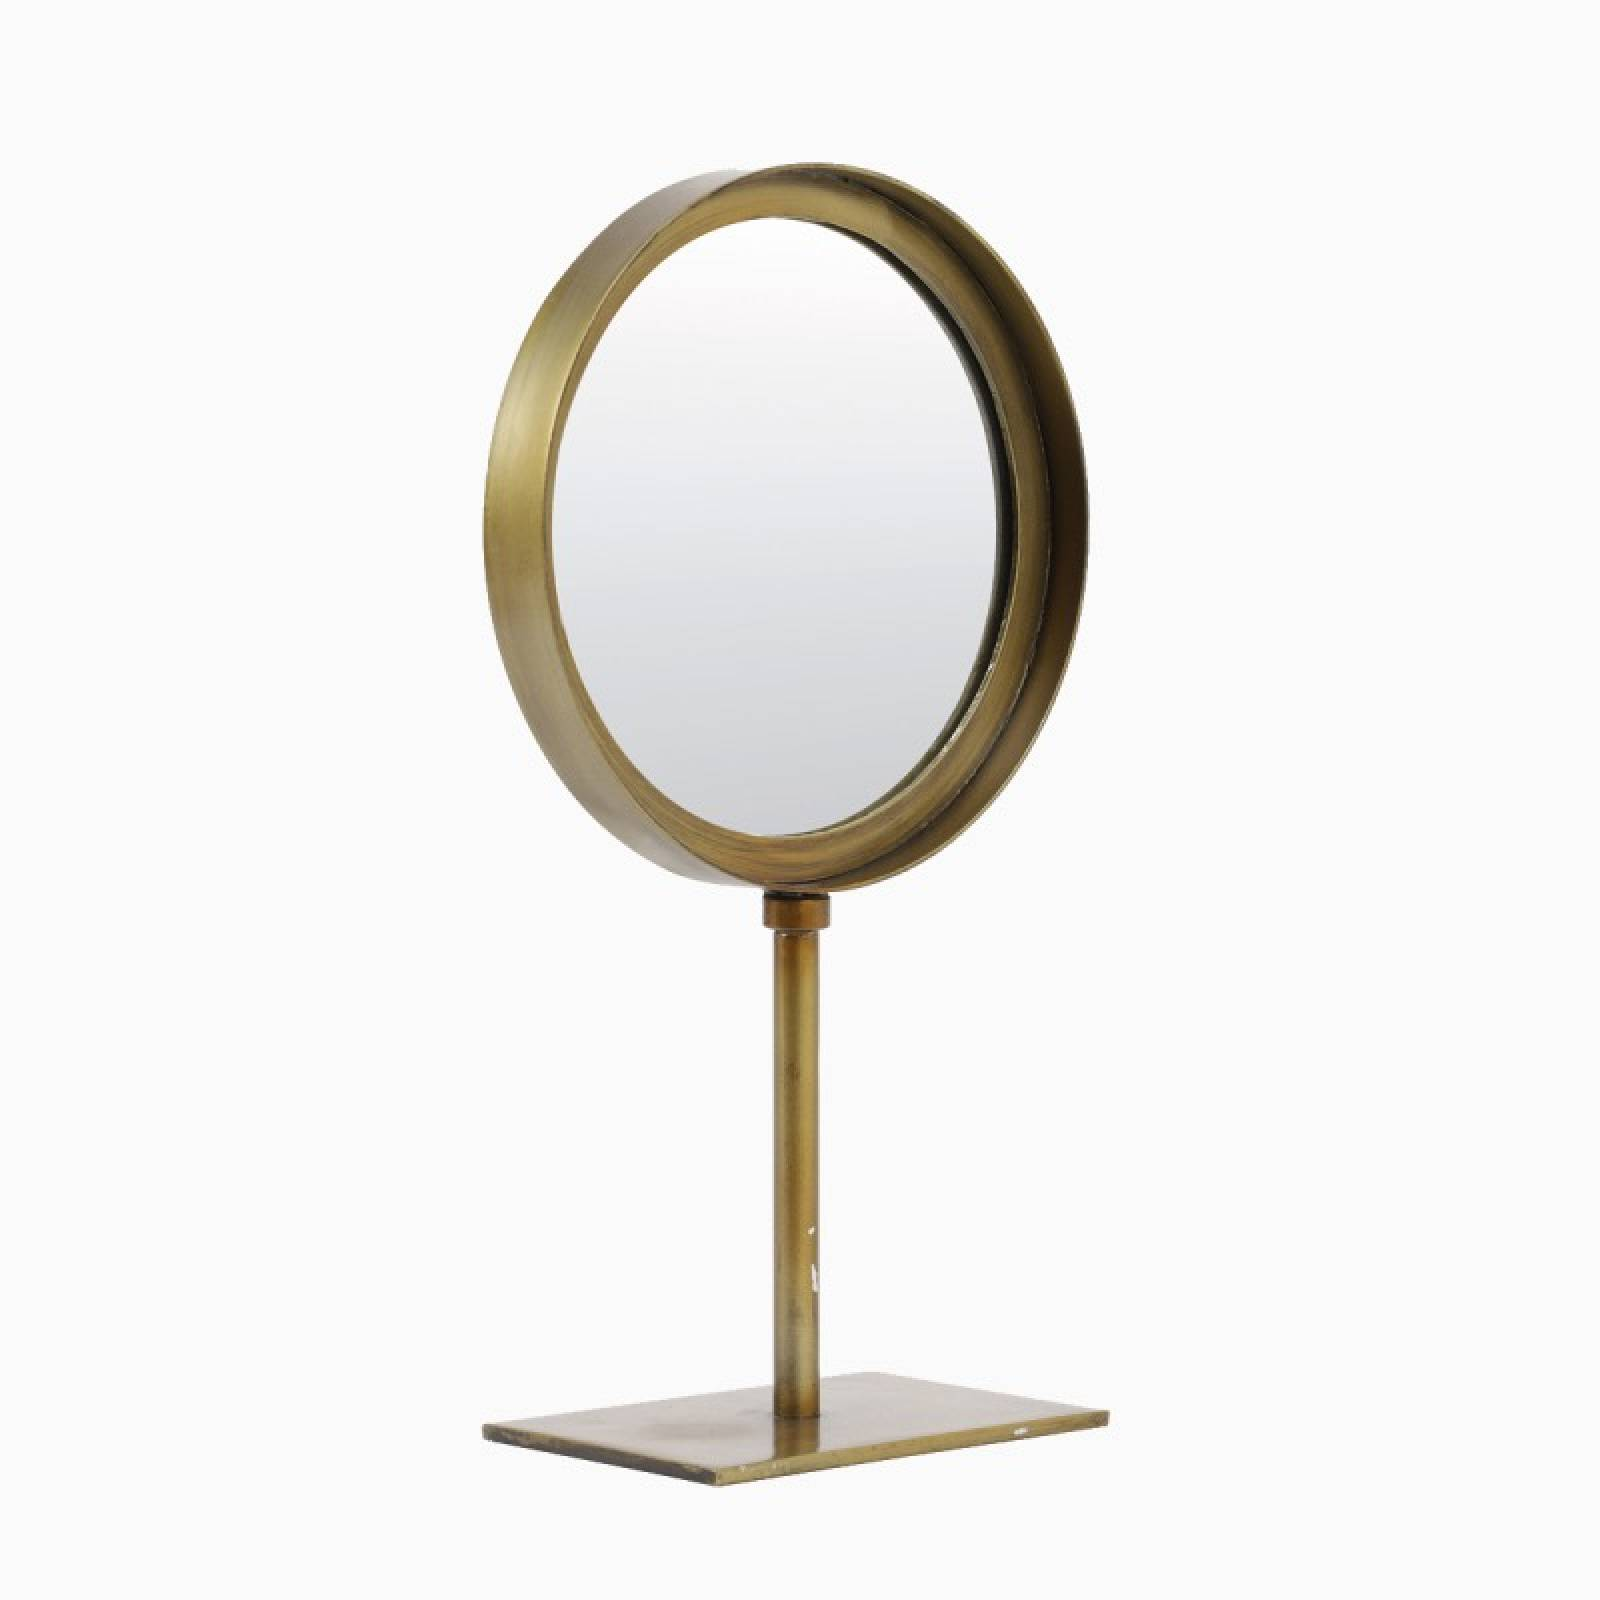 Small Round Mirror With Metal Frame On Stand In Brass 20x35cm thumbnails